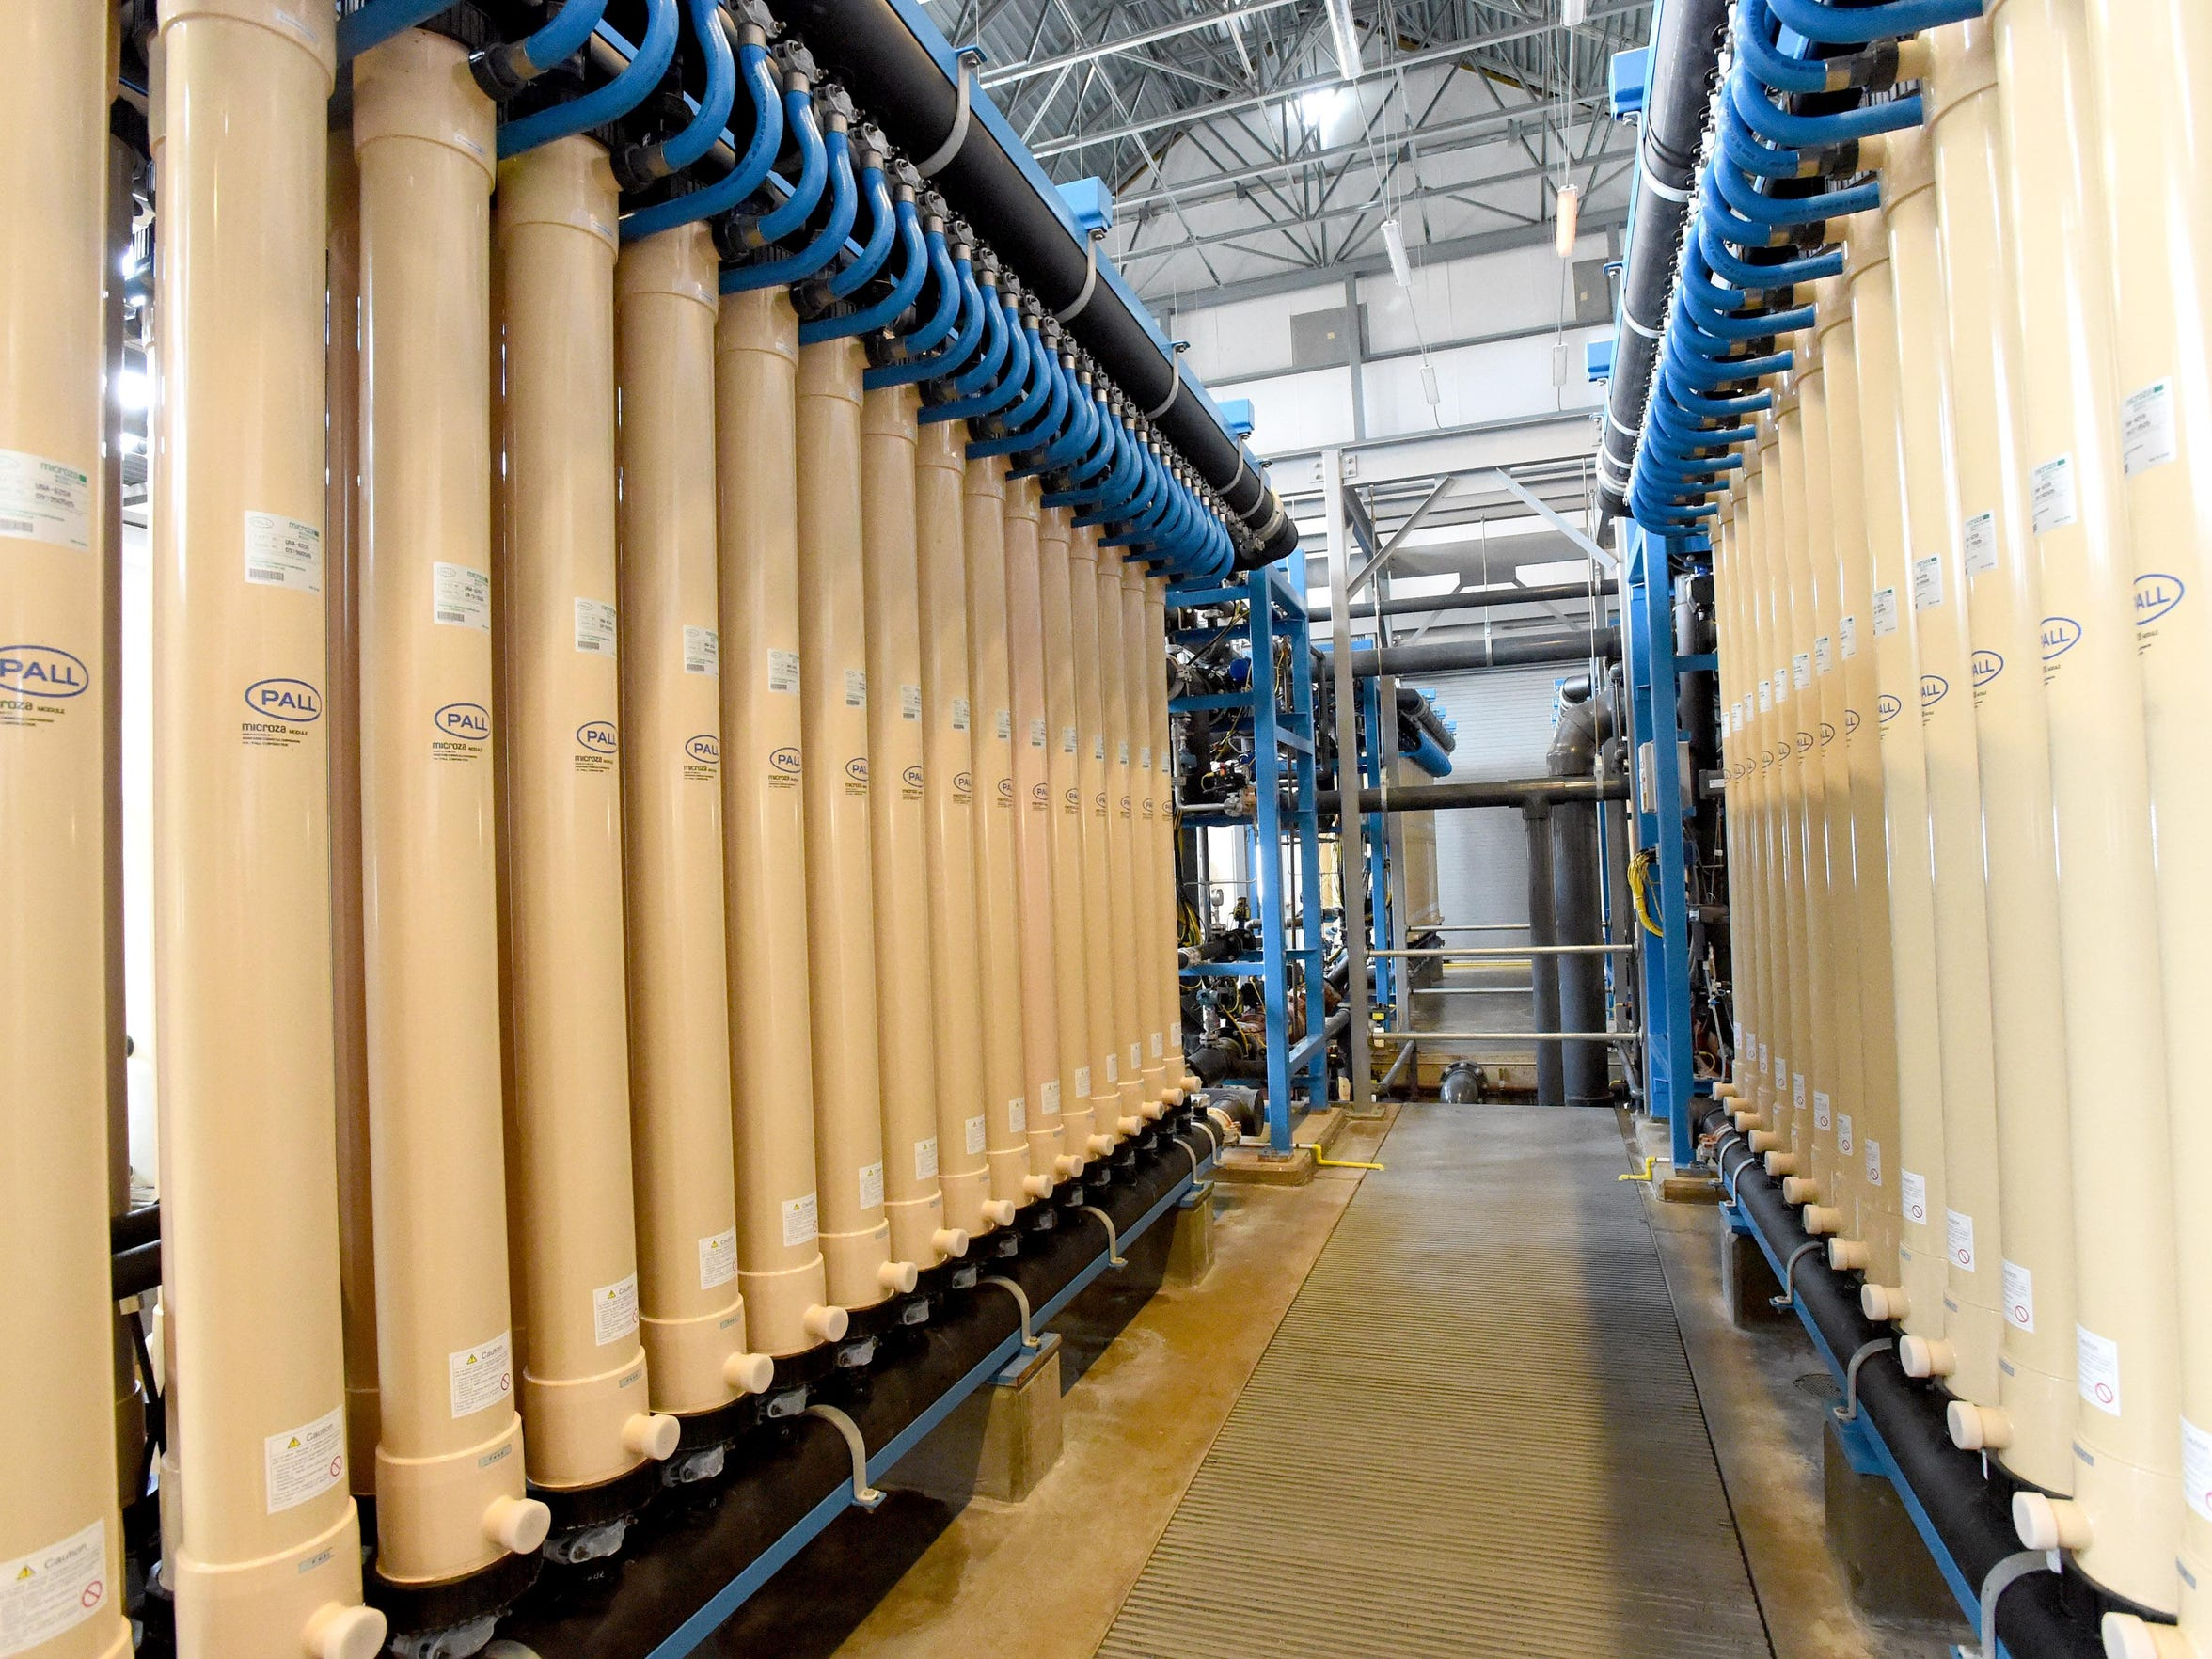 The filtration room at the heart of the water treatment plant at Coyner Springs Park in Waynesboro on Tuesday, March 15, 2016.